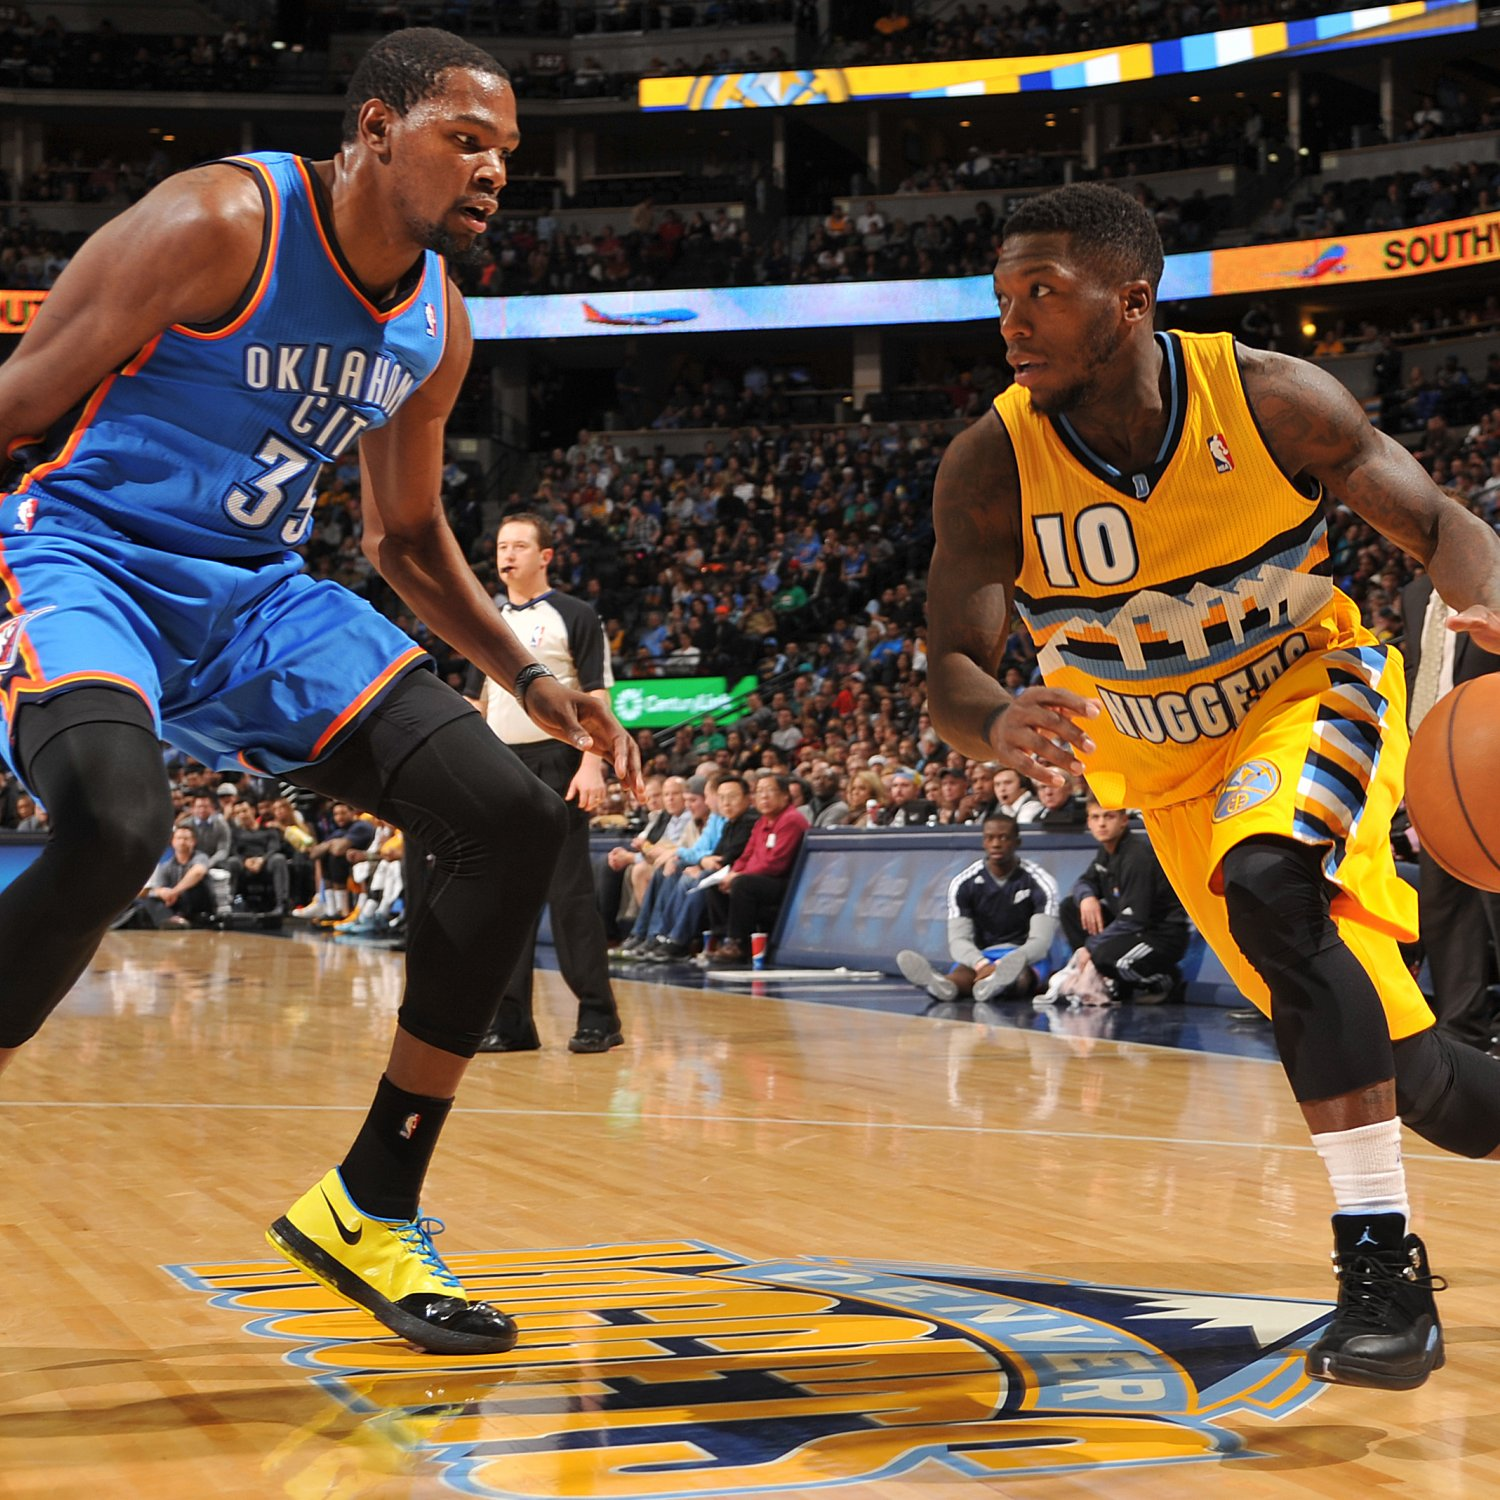 Denver Nuggets Struggling Without Star Power: Oklahoma City Thunder Vs. Denver Nuggets: Live Score And